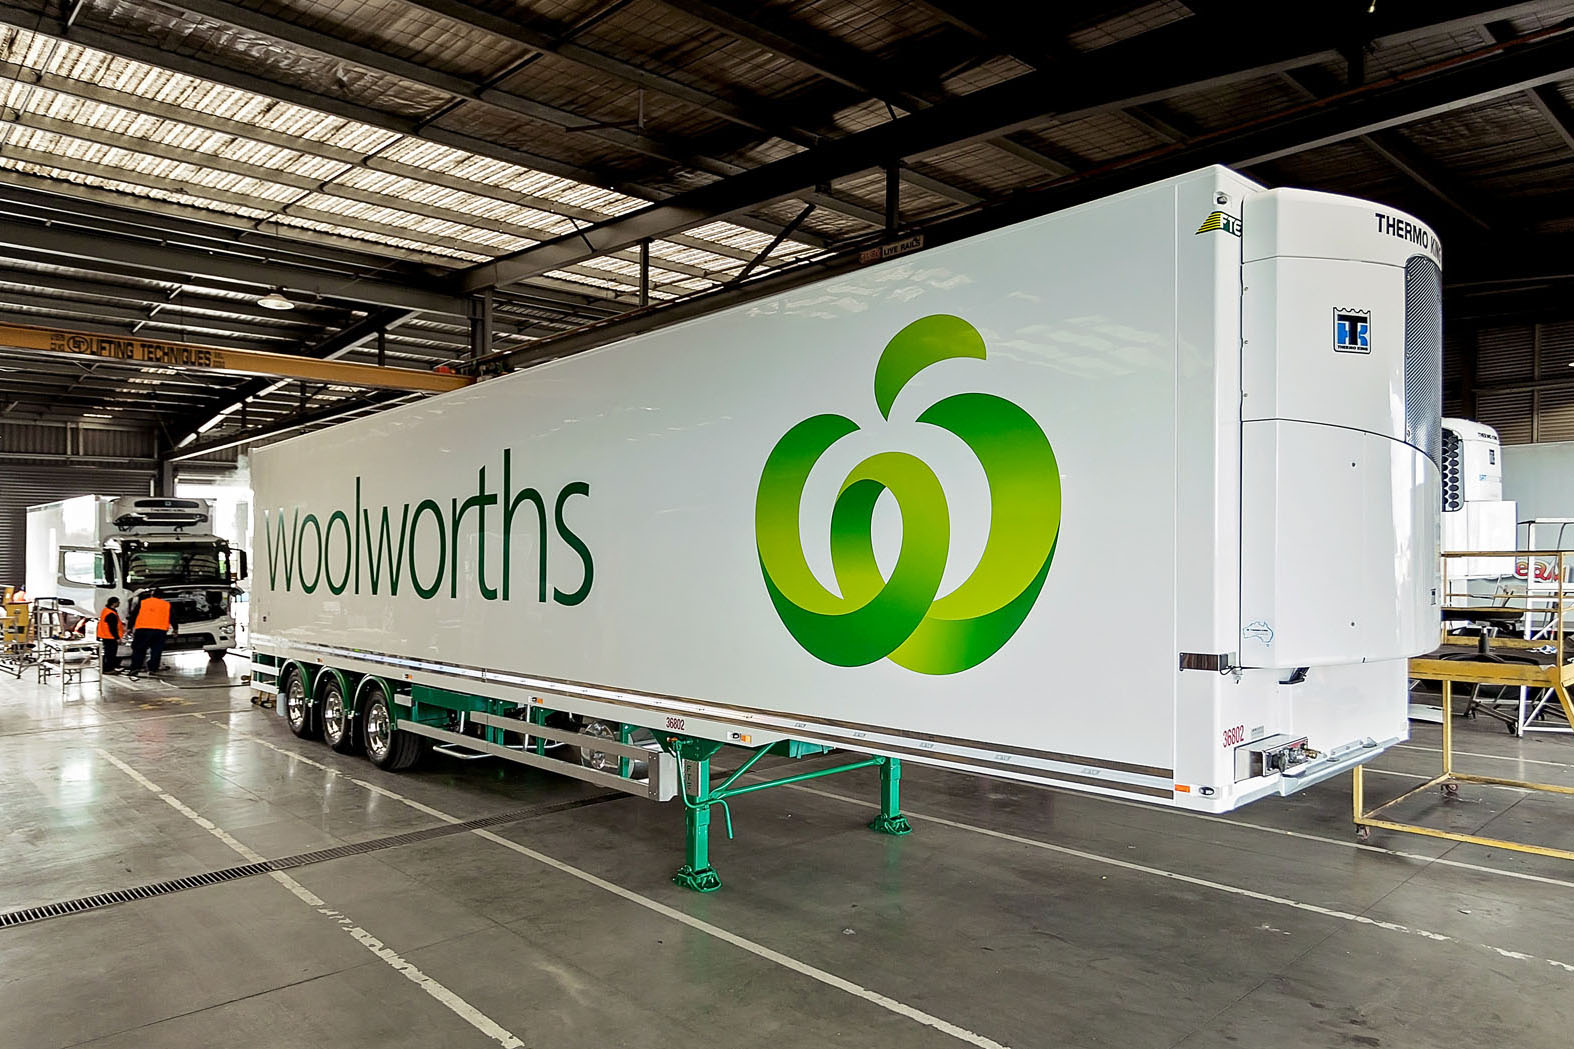 Thermo King unit on Woolworths truck